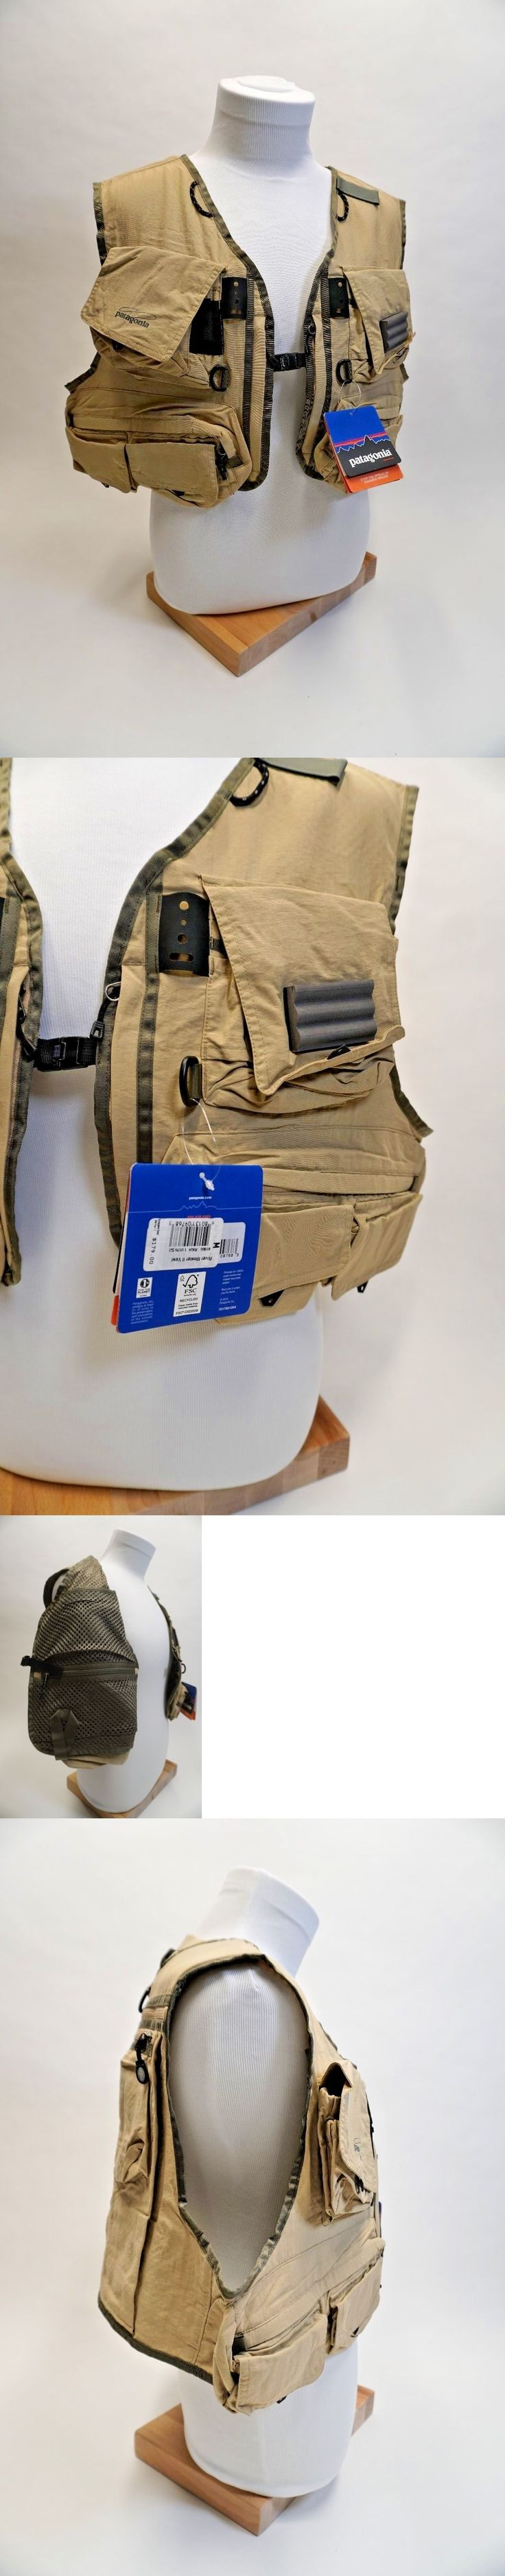 Vests 65982: Patagonia River Master Ii Fly Fishing Vest X-Large BUY IT NOW ONLY: $95.0